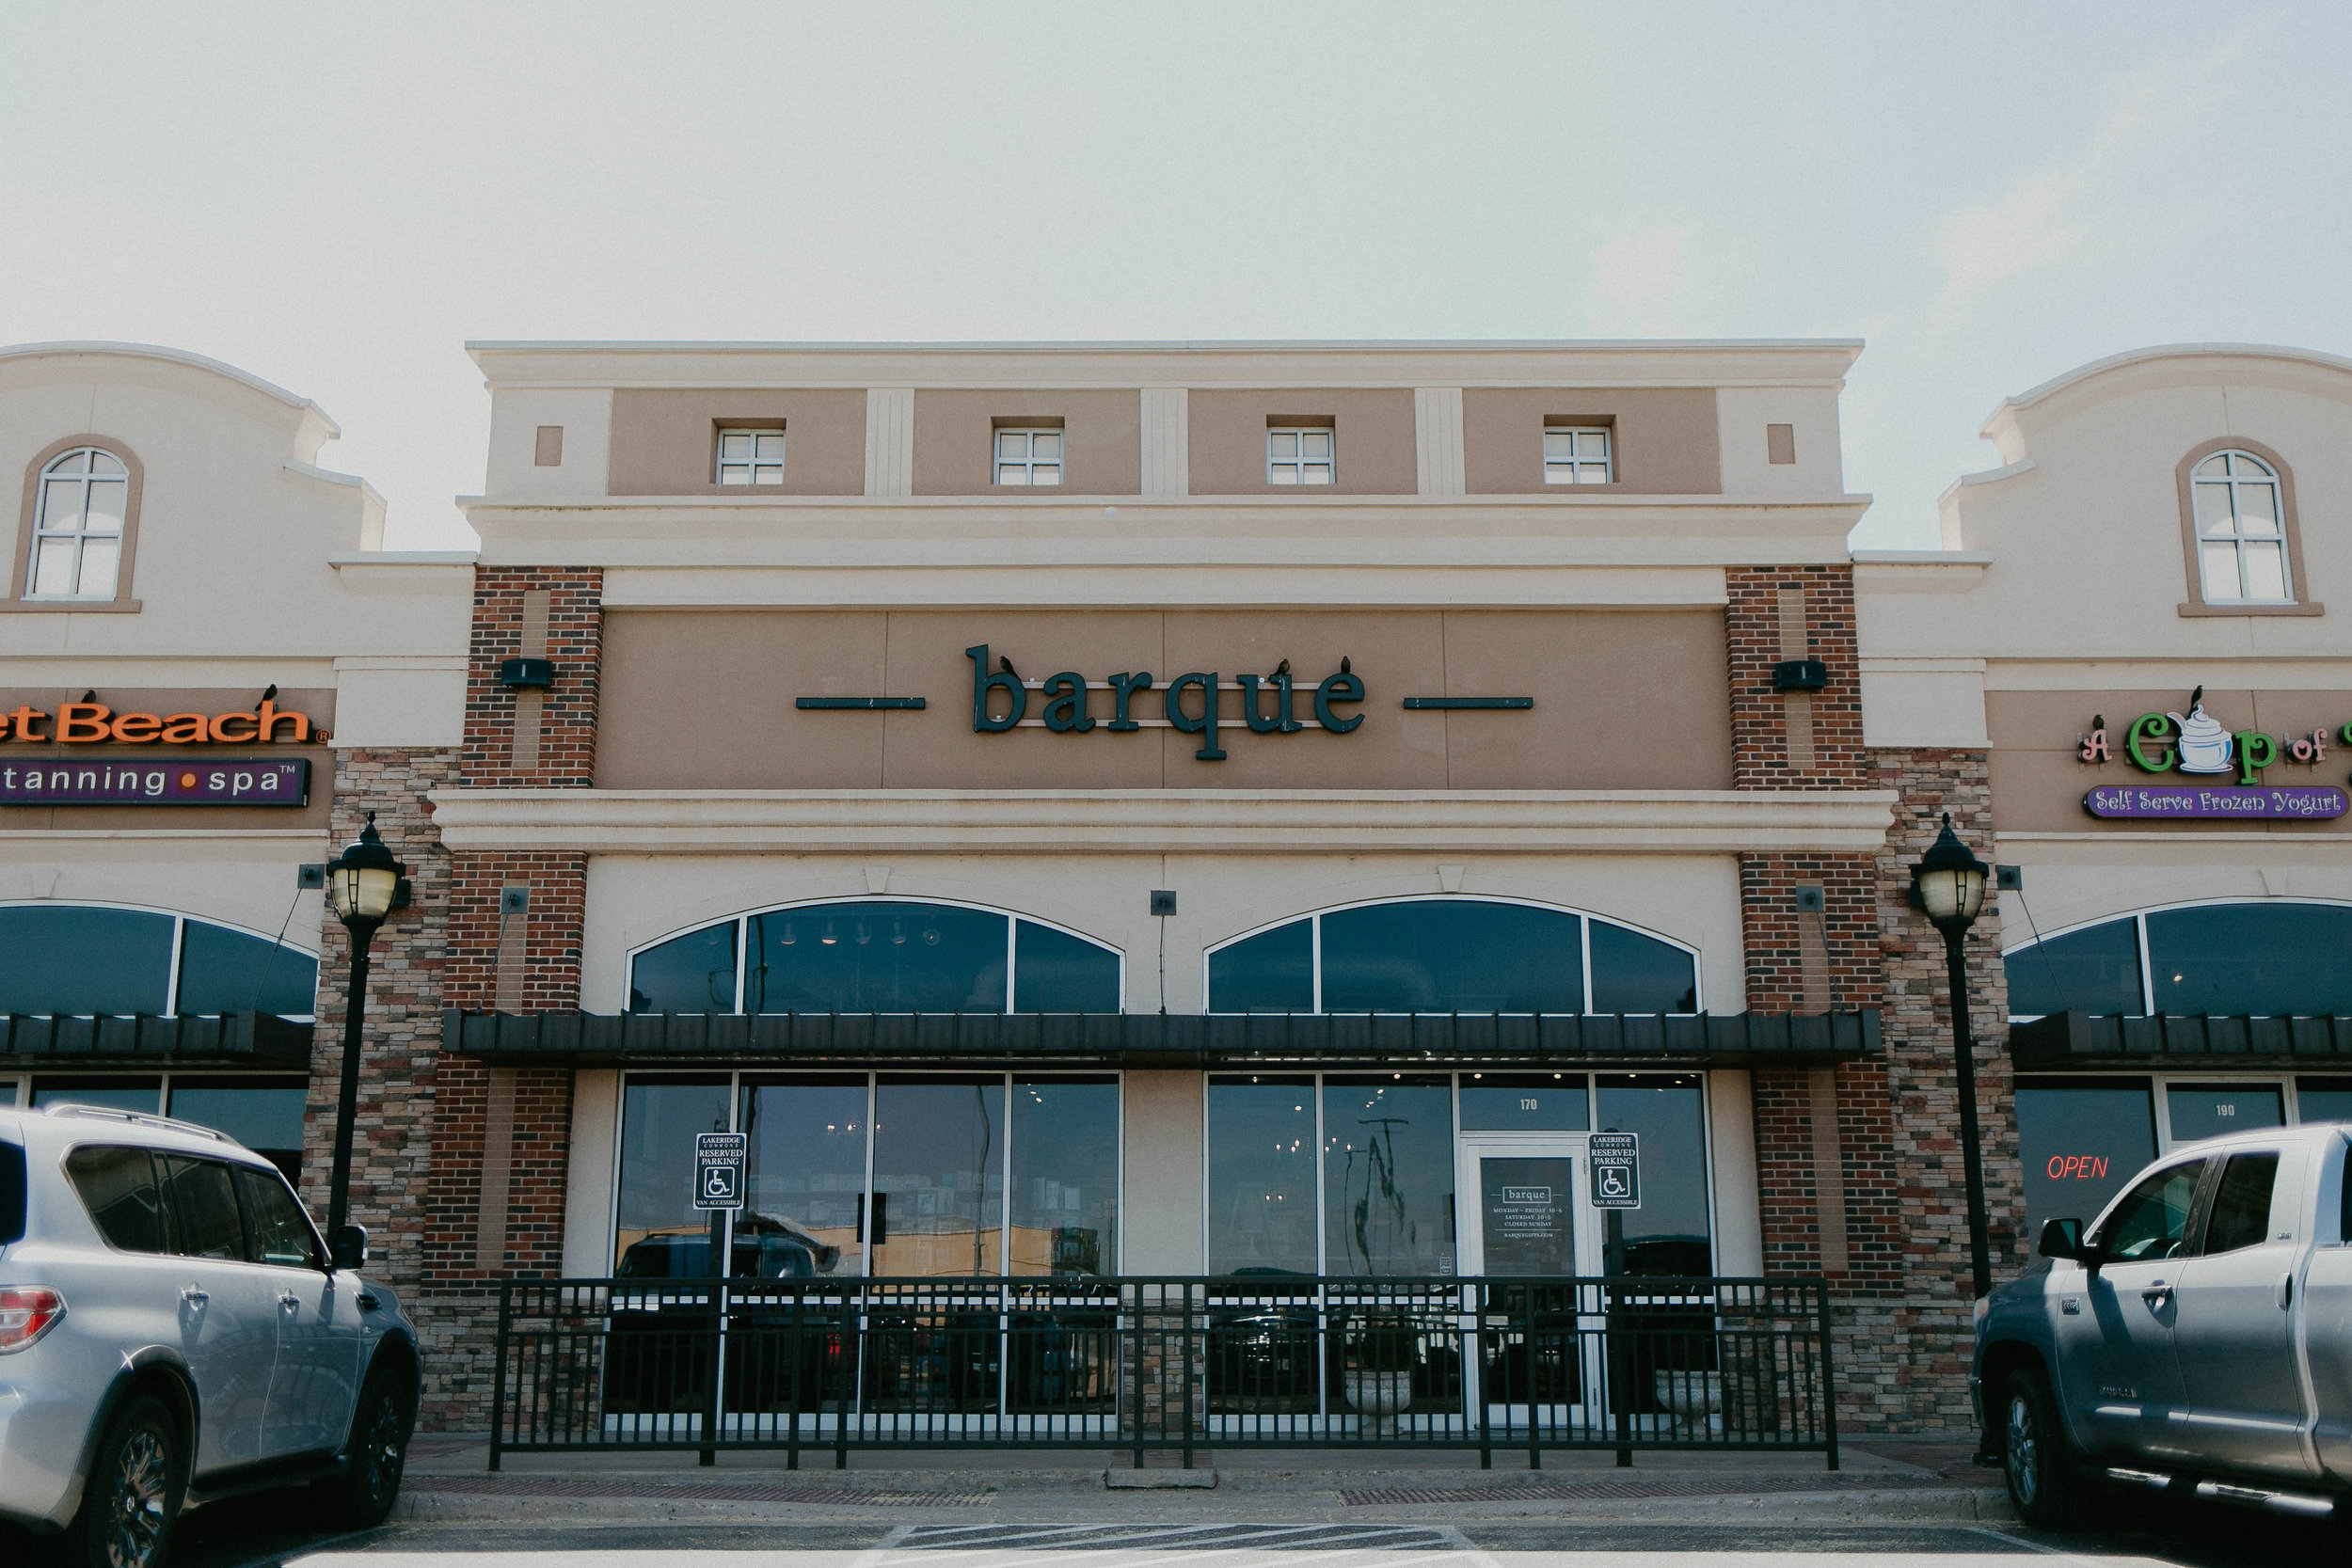 About Barque Gifts - The thought of owning a stationery store was always been a dream for Kandice, while she was attending Texas Tech, she worked at Calligraphy Etc. (the store's previous name), and loved helping people select invitations for events in their lives - weddings, baby showers, birthday parties, and retirements. After a few years she had the opportunity of a lifetime to buy the business and it has been a whirlwind ever since! When she changed the name to Barque, they incorporated more of the things that Kandice loves - like dogs and cooking - and the store continues to evolve to best meet the needs of their customers.